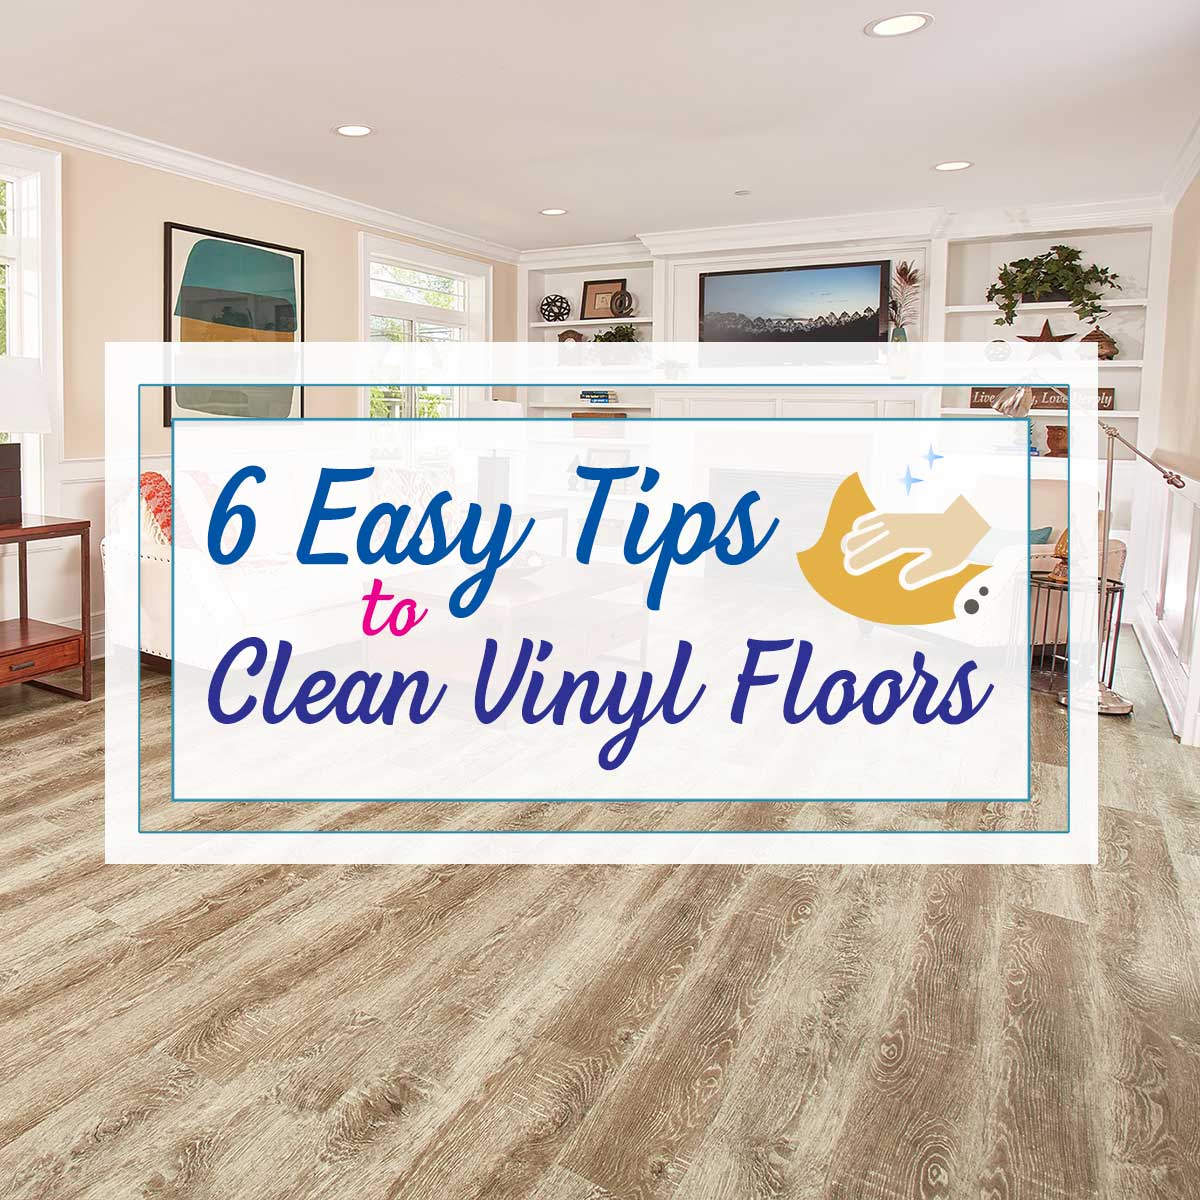 Easy To Clean Commercial Industrial Flooring: Don't Stress The Mess: 6 Easy Tips To Clean Vinyl Floors